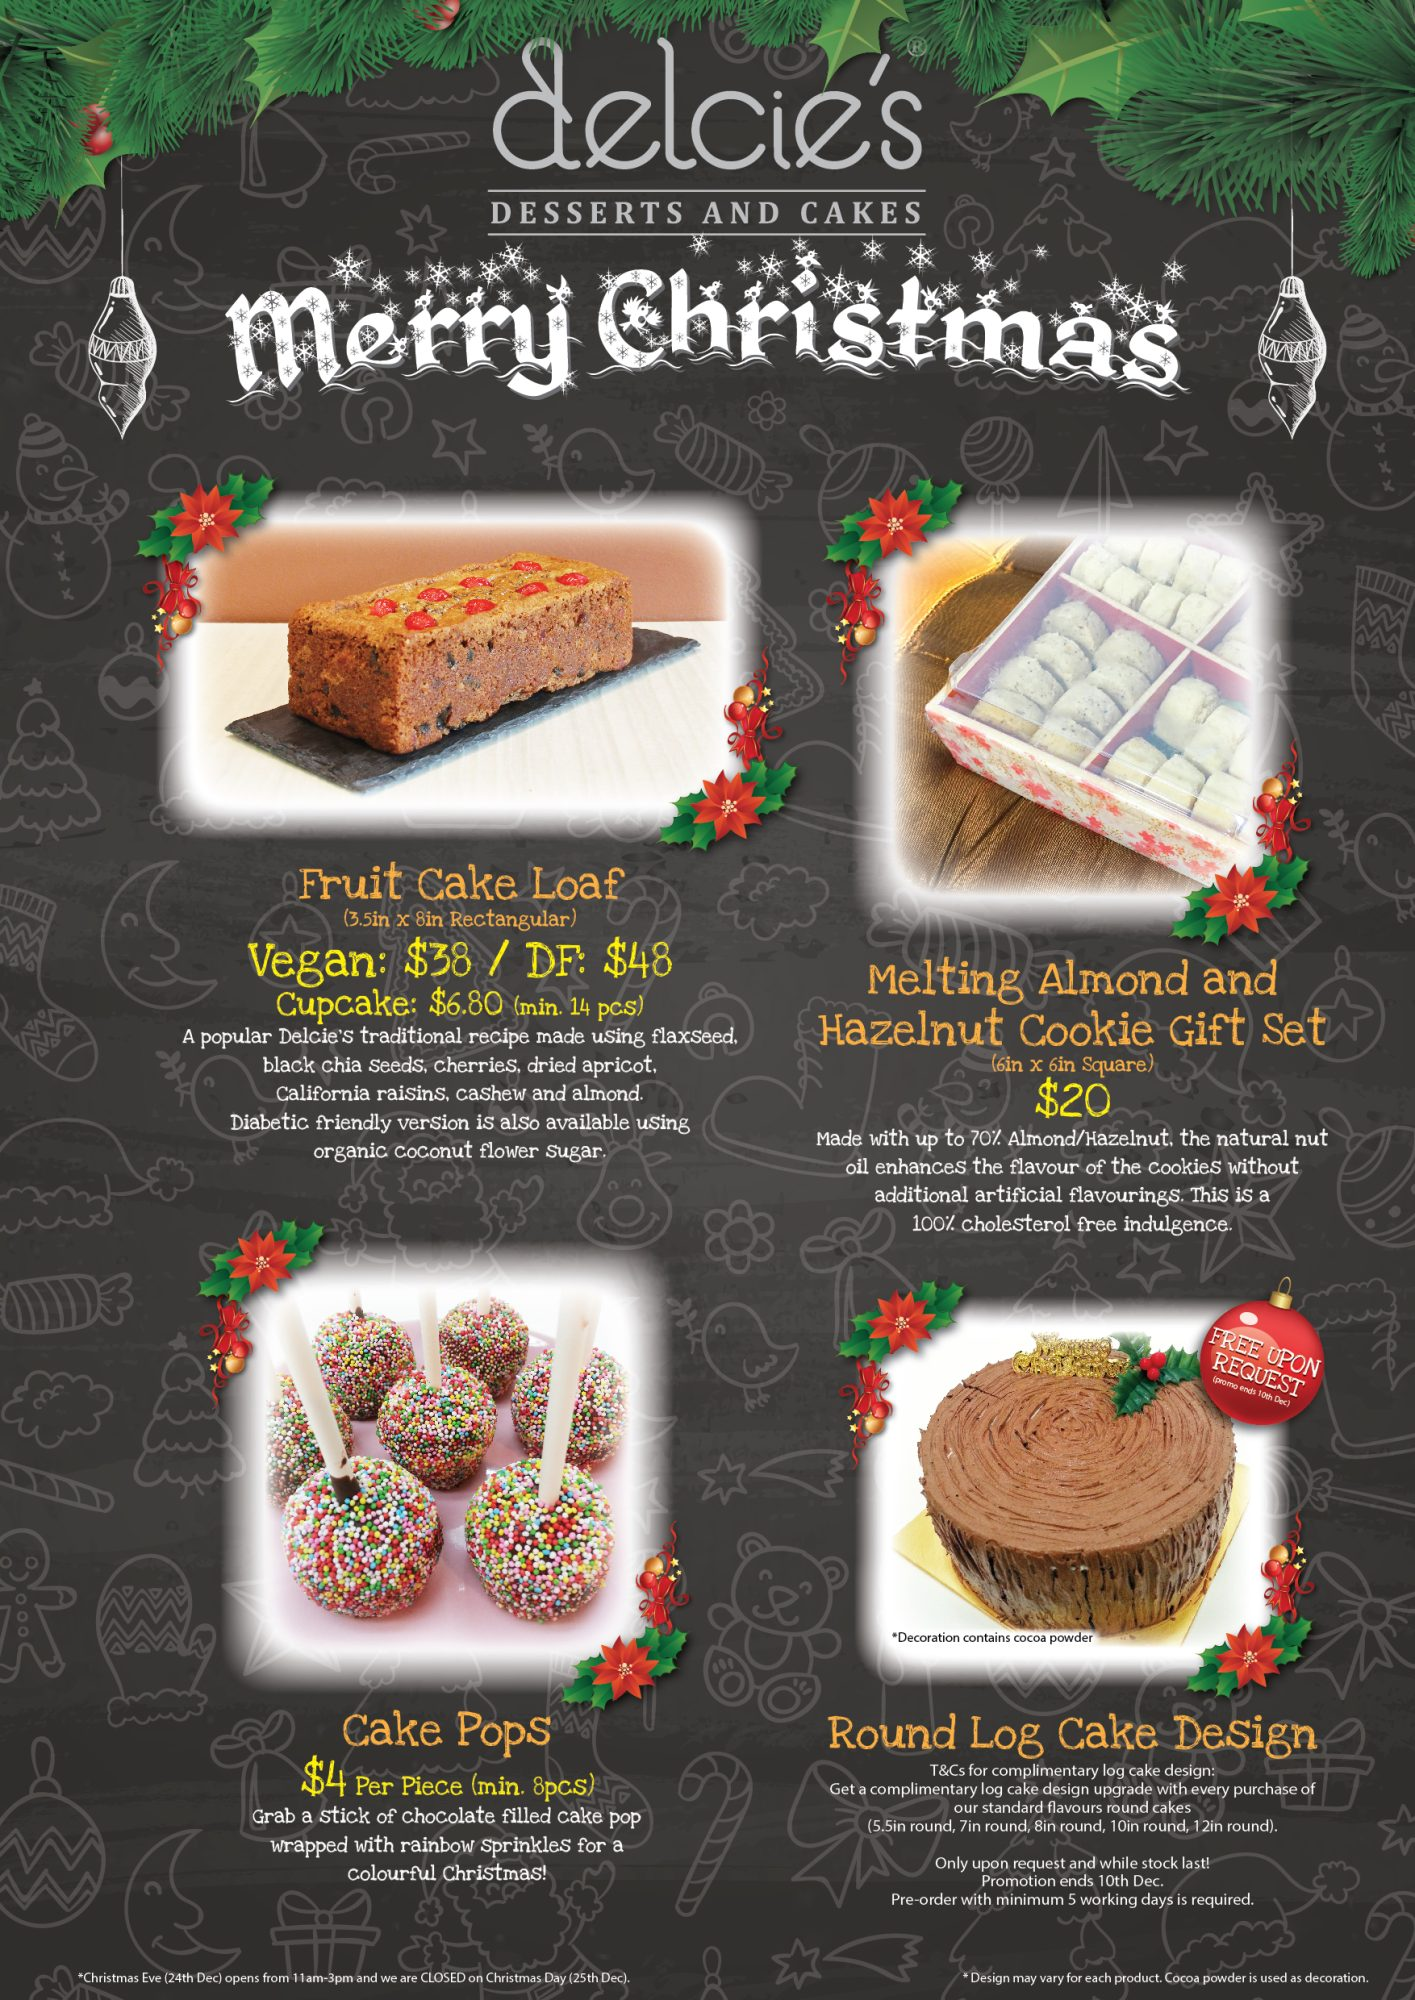 Cake Decorating Company Voucher Code : Christmas Log Cakes 2015   Delcies Desserts and Cakes